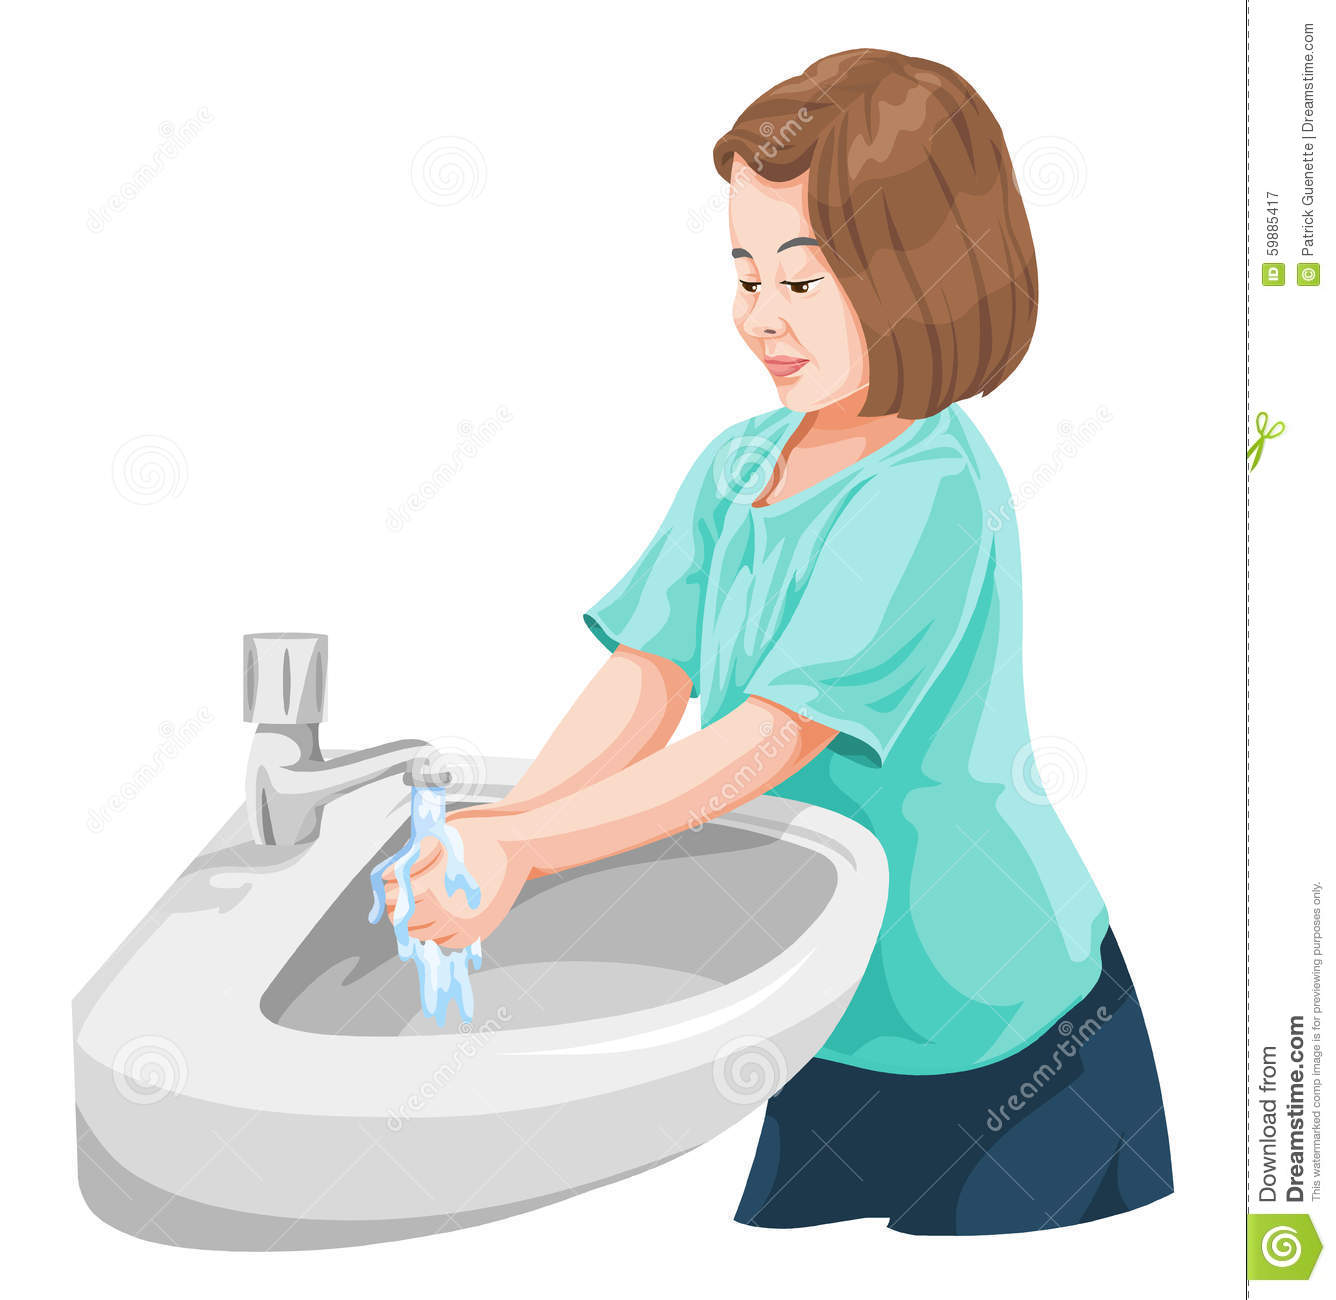 Vector of girl washing hands in wash basin.